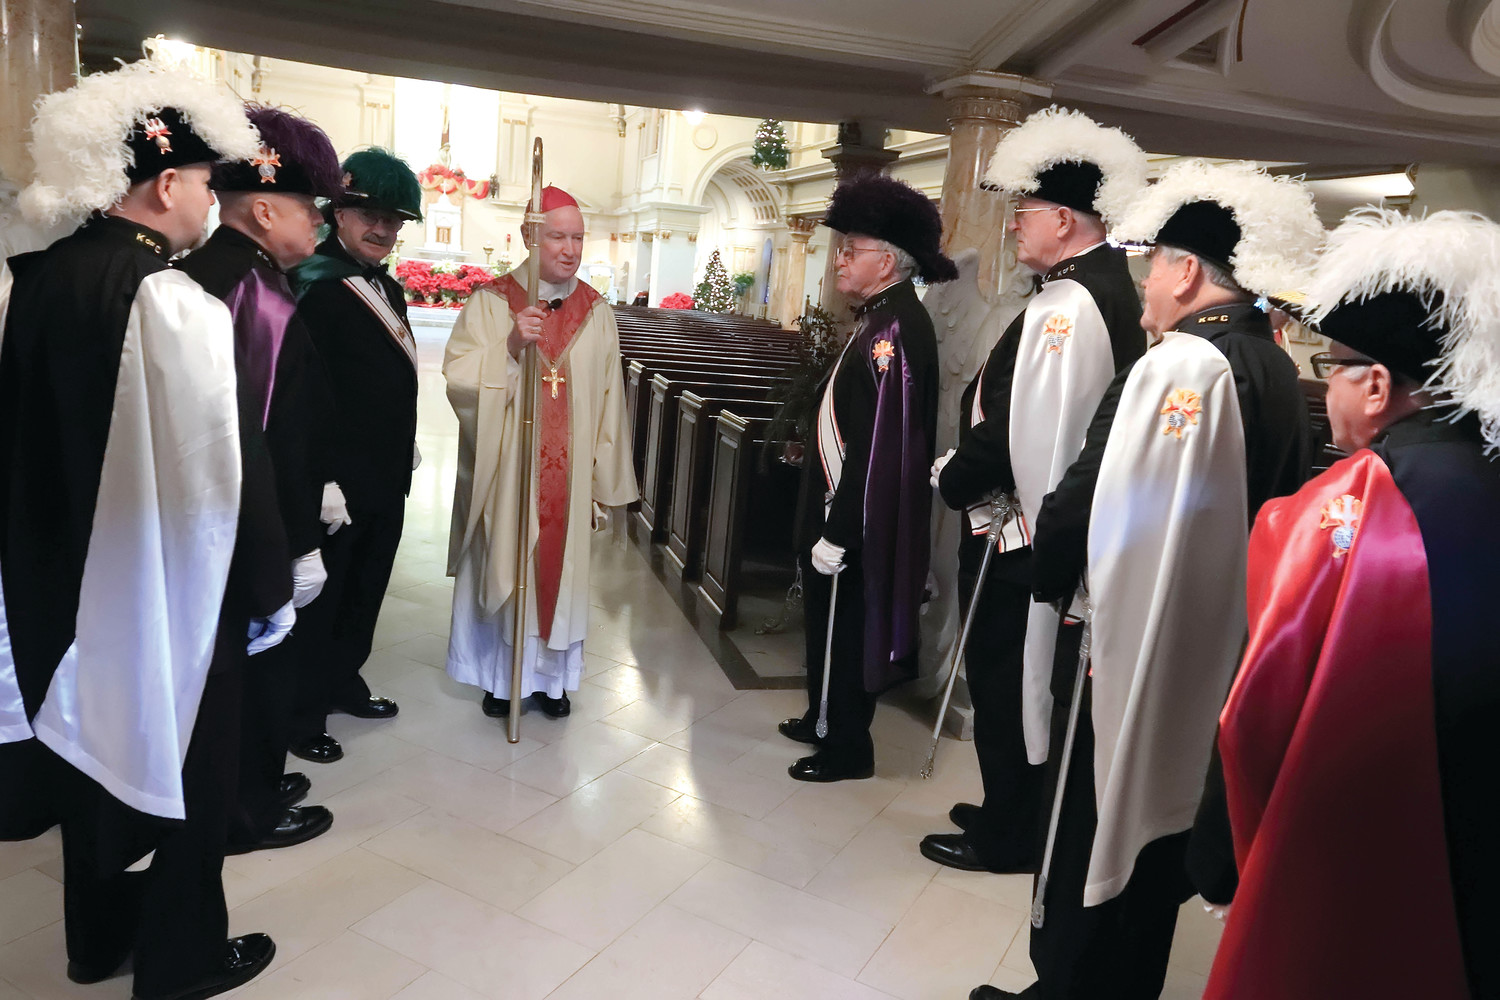 Bishop Malooly talks with members of the Knights of Columbus before the memorial Mass for Bishop Robert Mulvee at the Cathedral of Saint Peter Church, January 13, 2019.